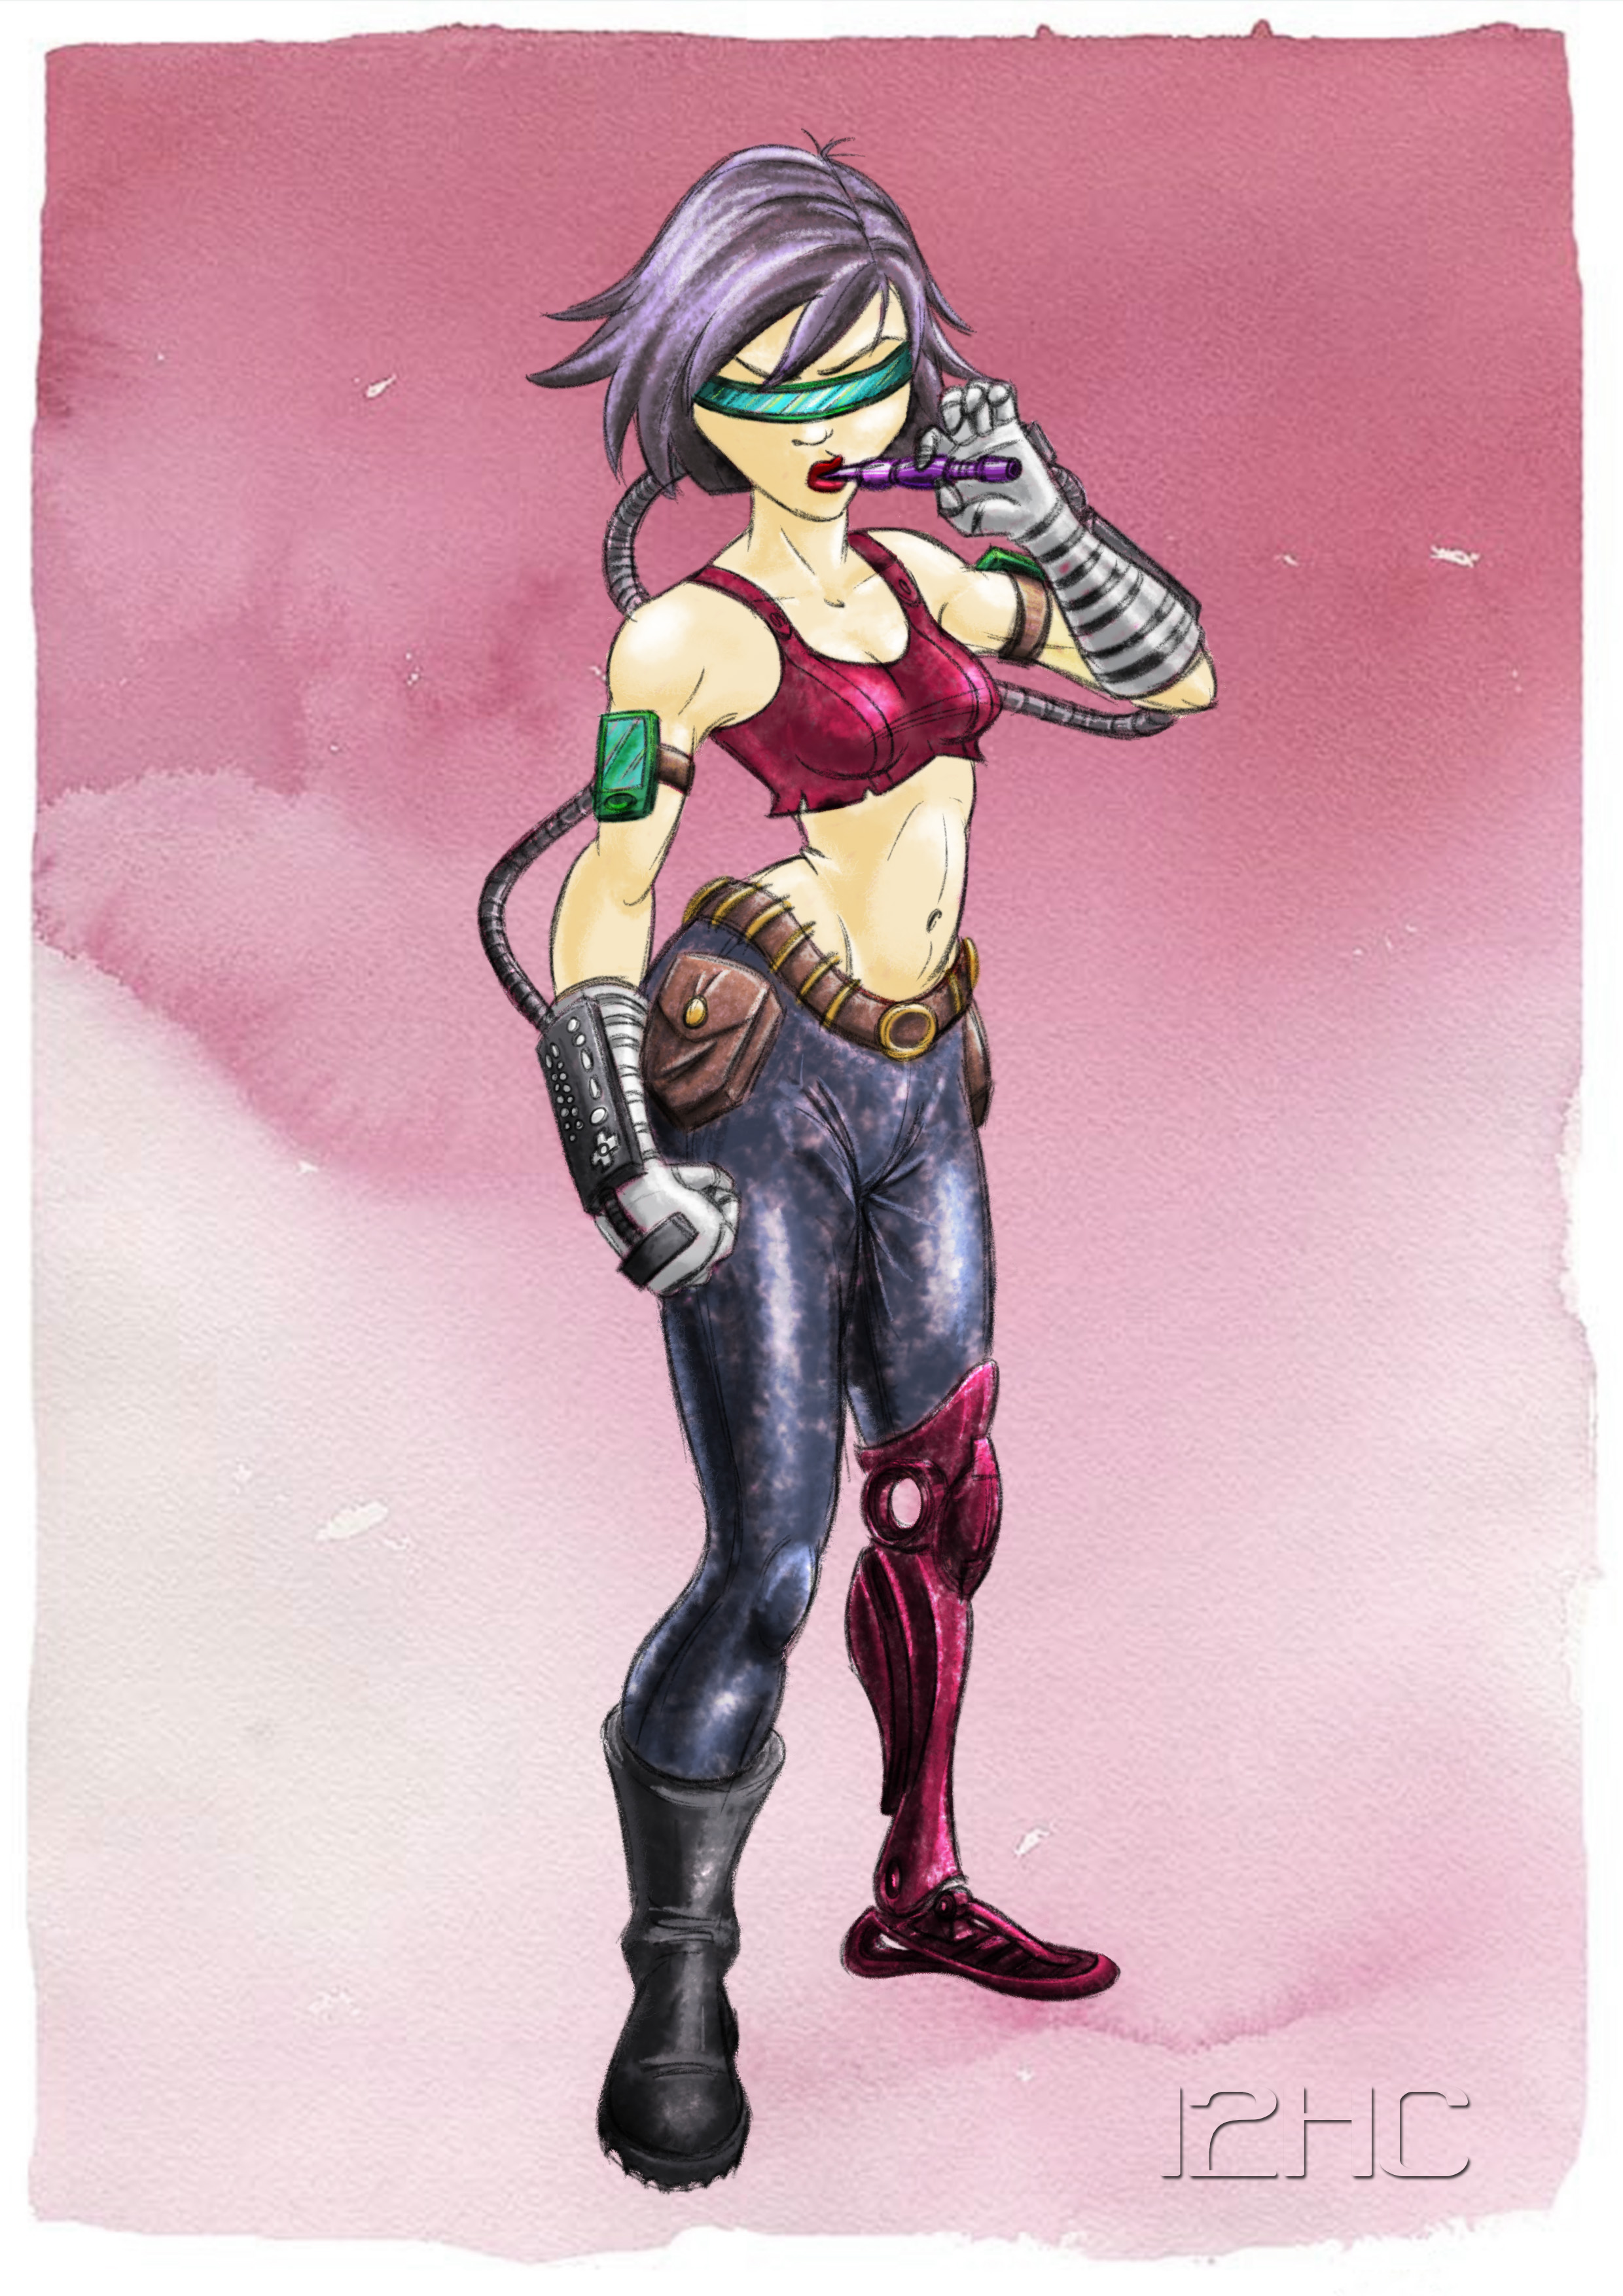 02 - Cyber Chick - Coloured 3.jpg